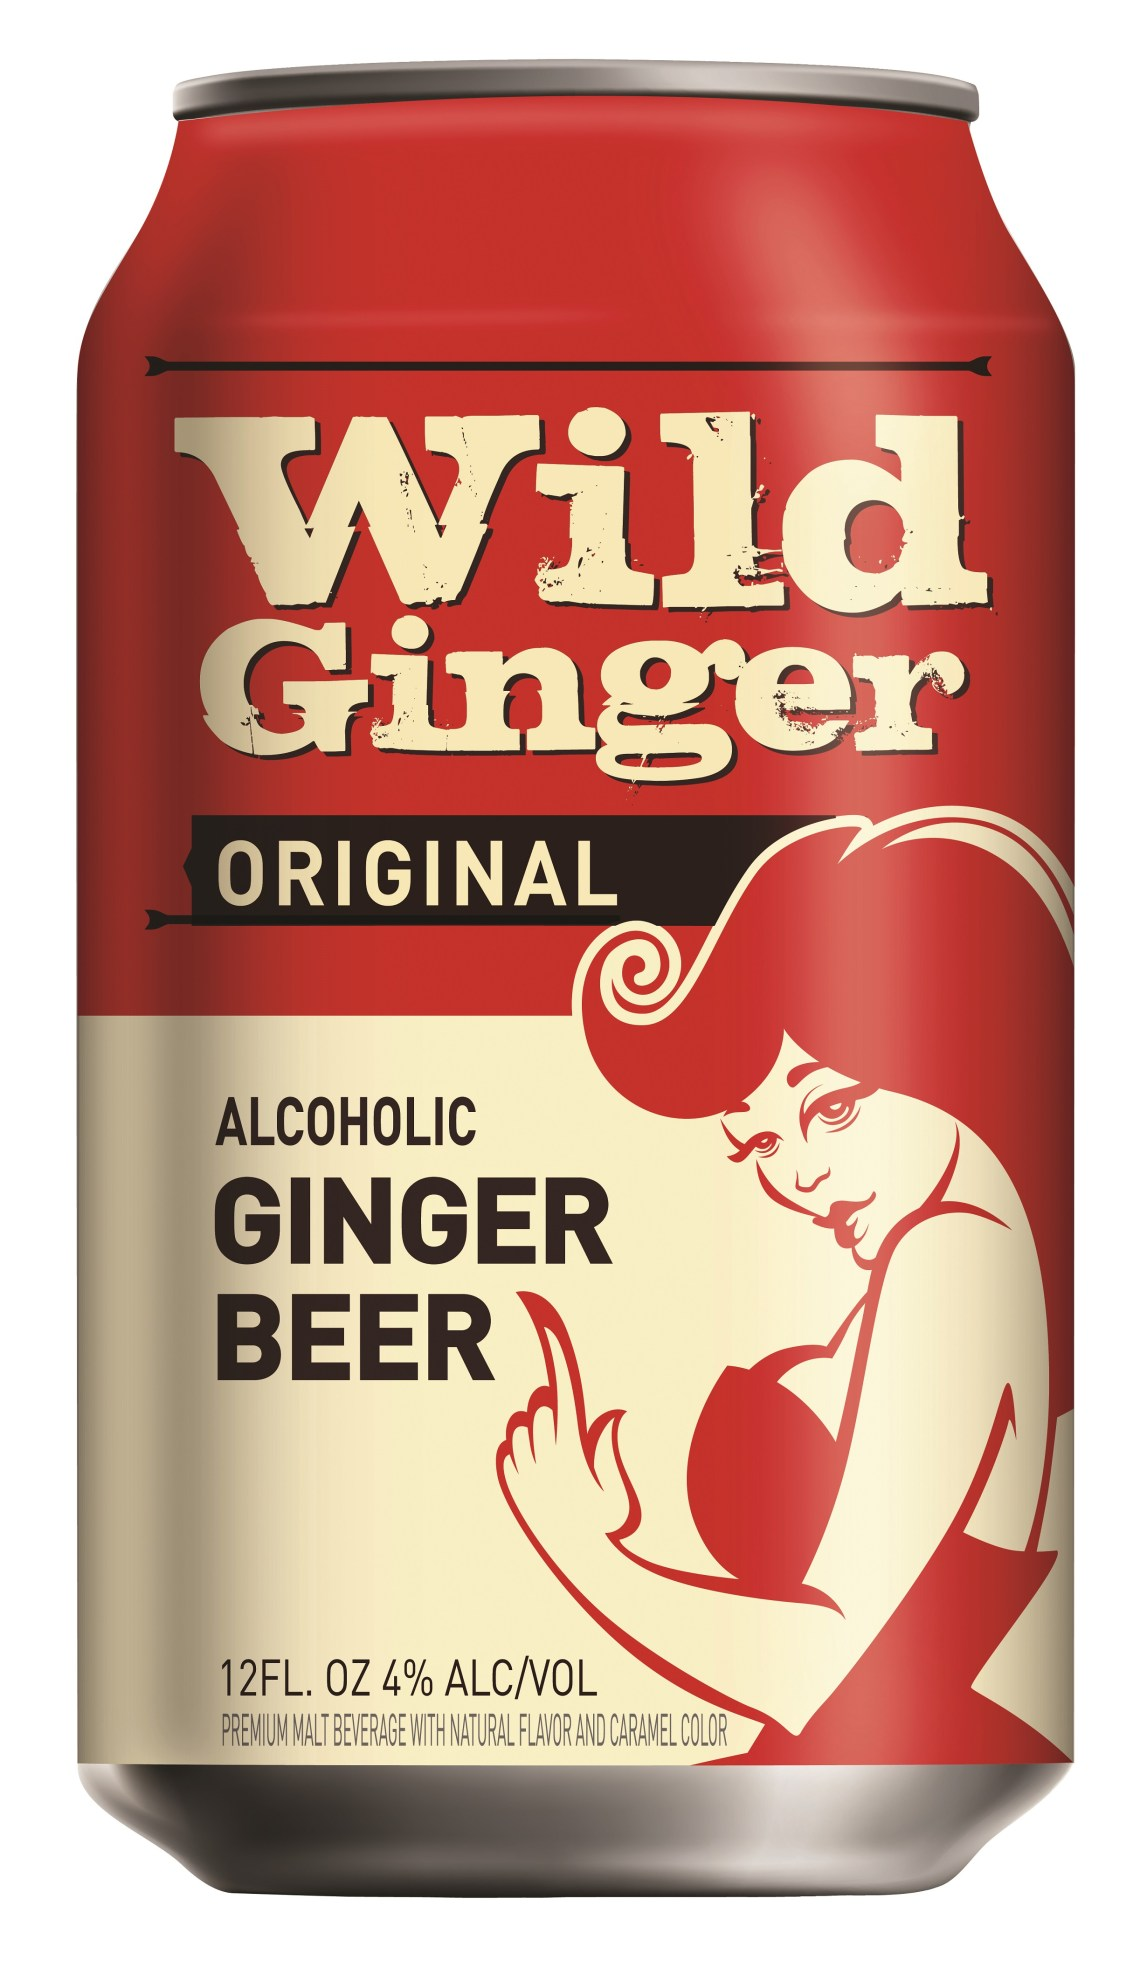 Wild Ginger Original Alcoholic Ginger Beer